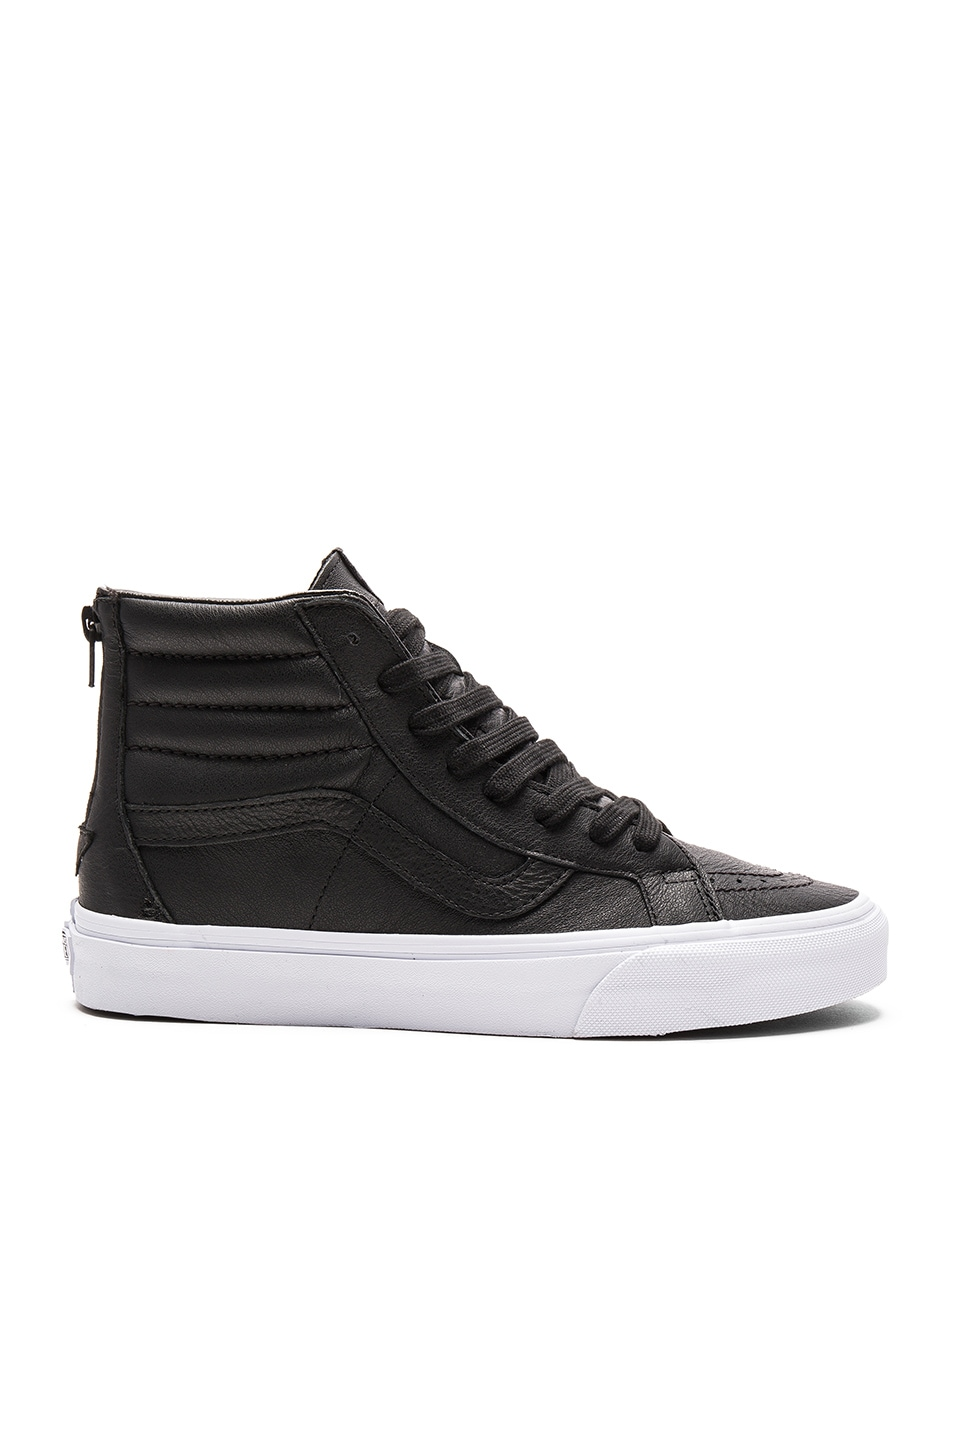 SK8-HI Reissue Zip Premium Leather